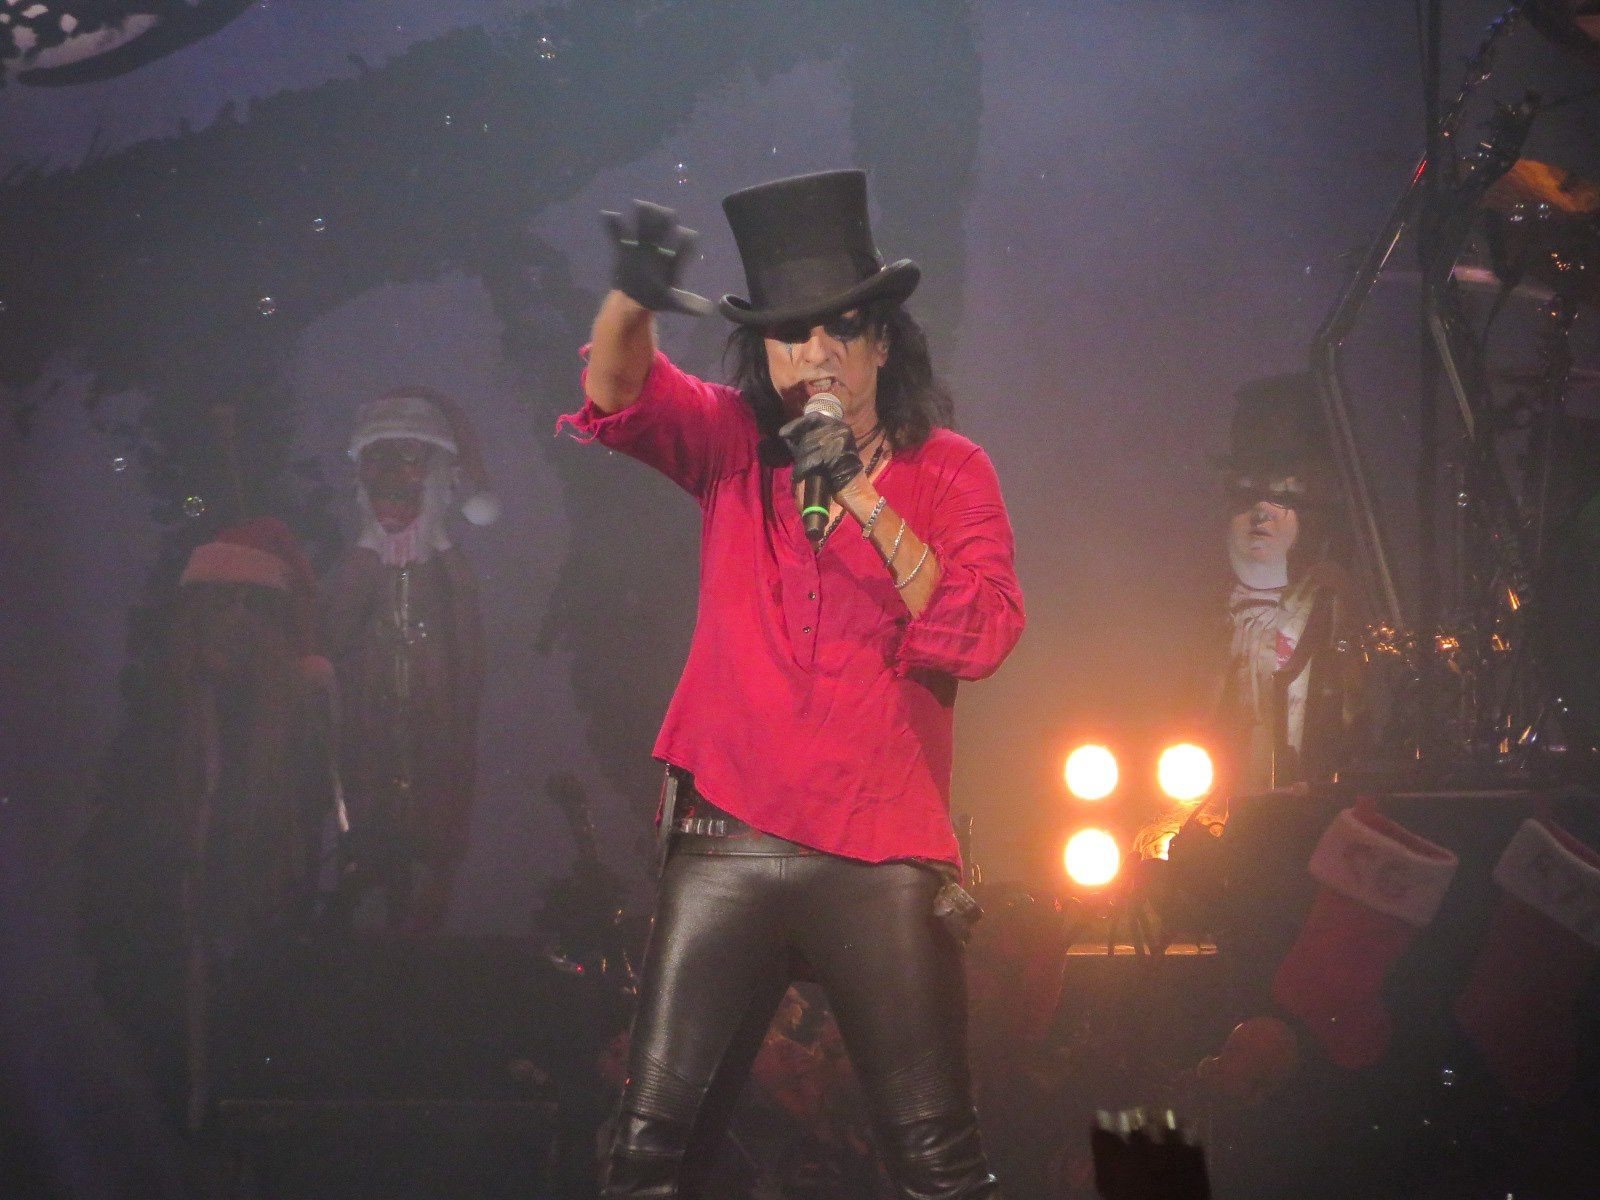 Alice Cooper performs at 2014 Christmas pudding.